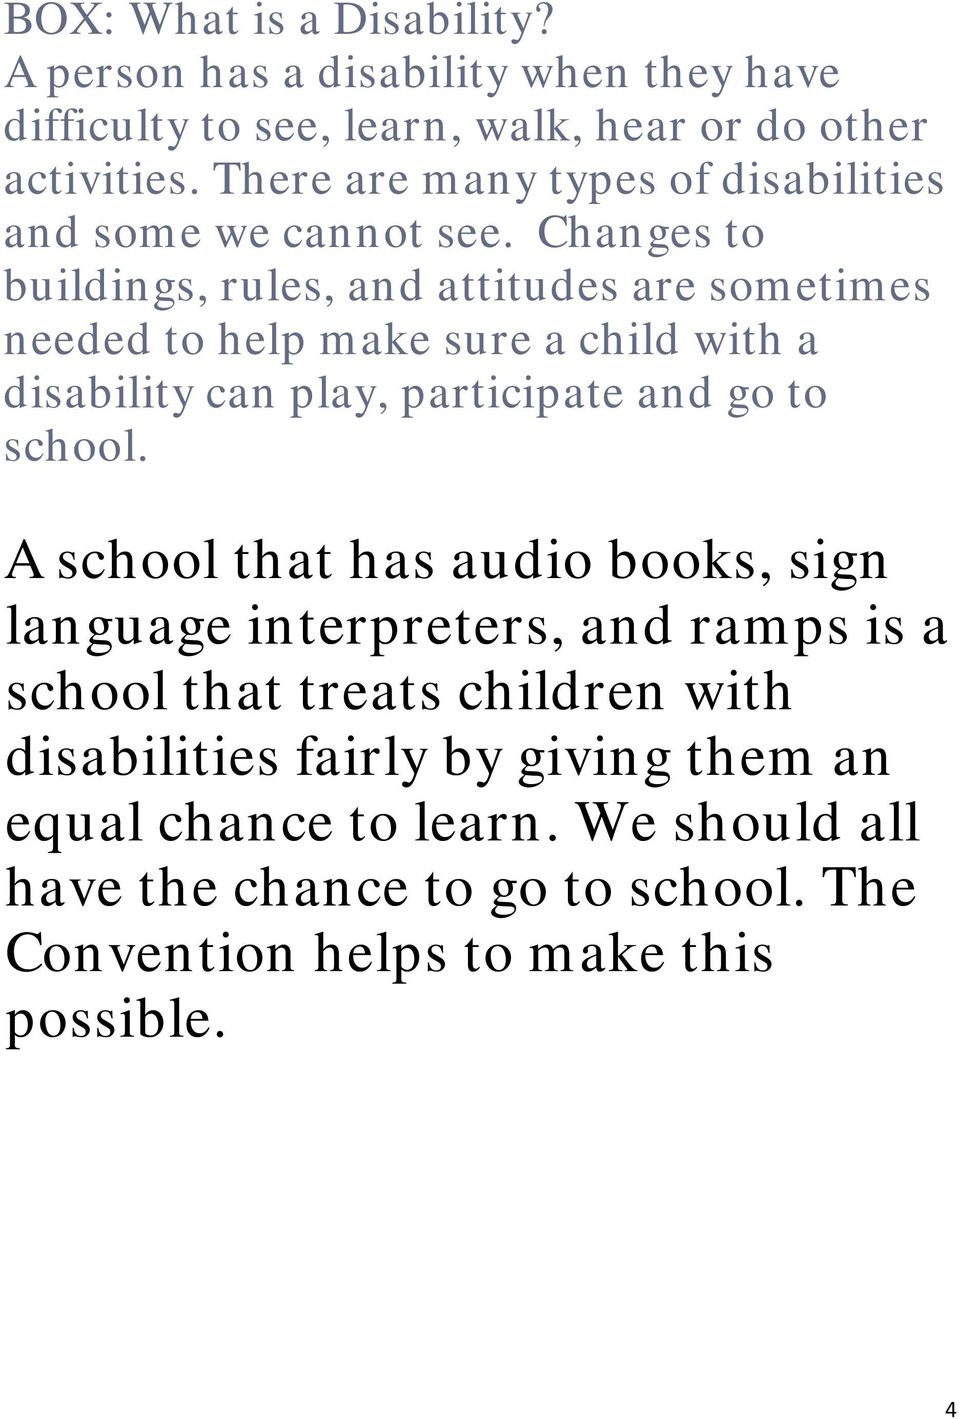 Changes to buildings, rules, and attitudes are sometimes needed to help make sure a child with a disability can play, participate and go to school.